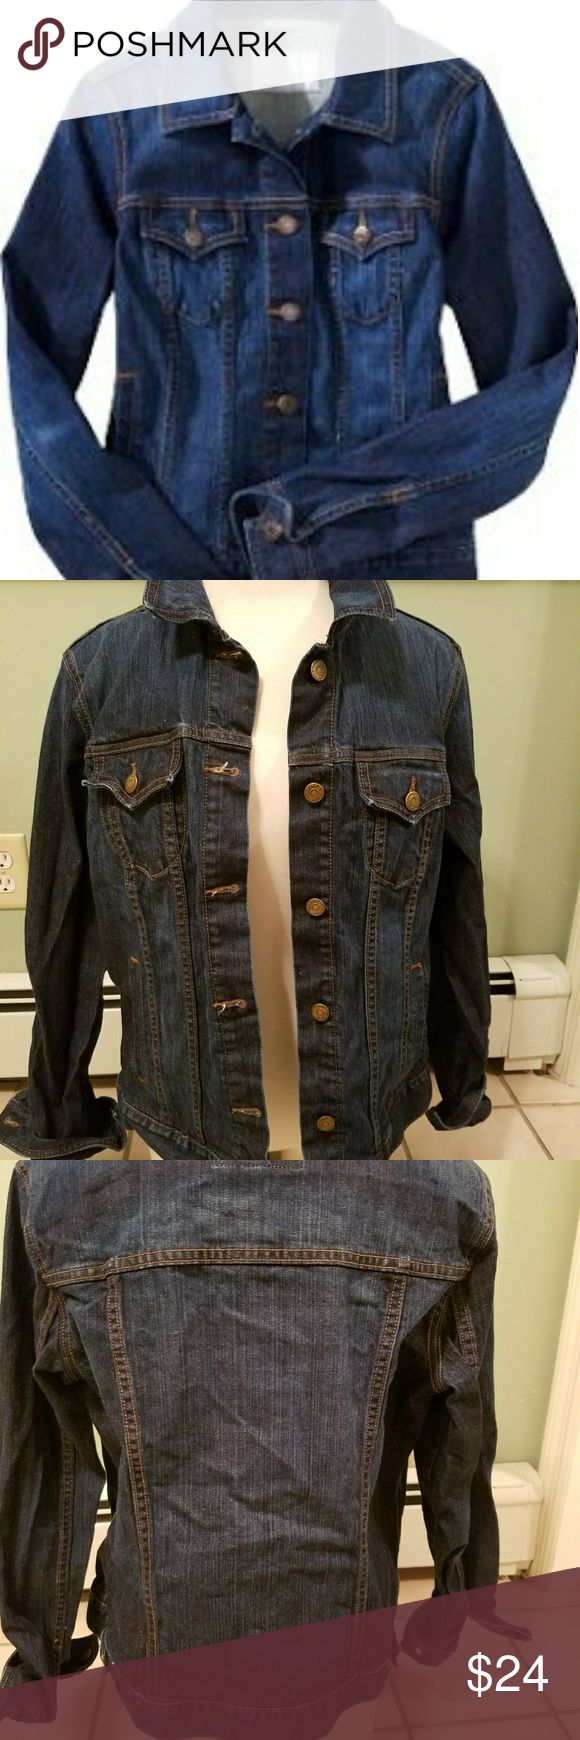 OLD NAVY JEAN JACKET!! XL. FRESHLY WASHED! GREAT CONDITION Old Navy Jackets & Coats Jean Jackets